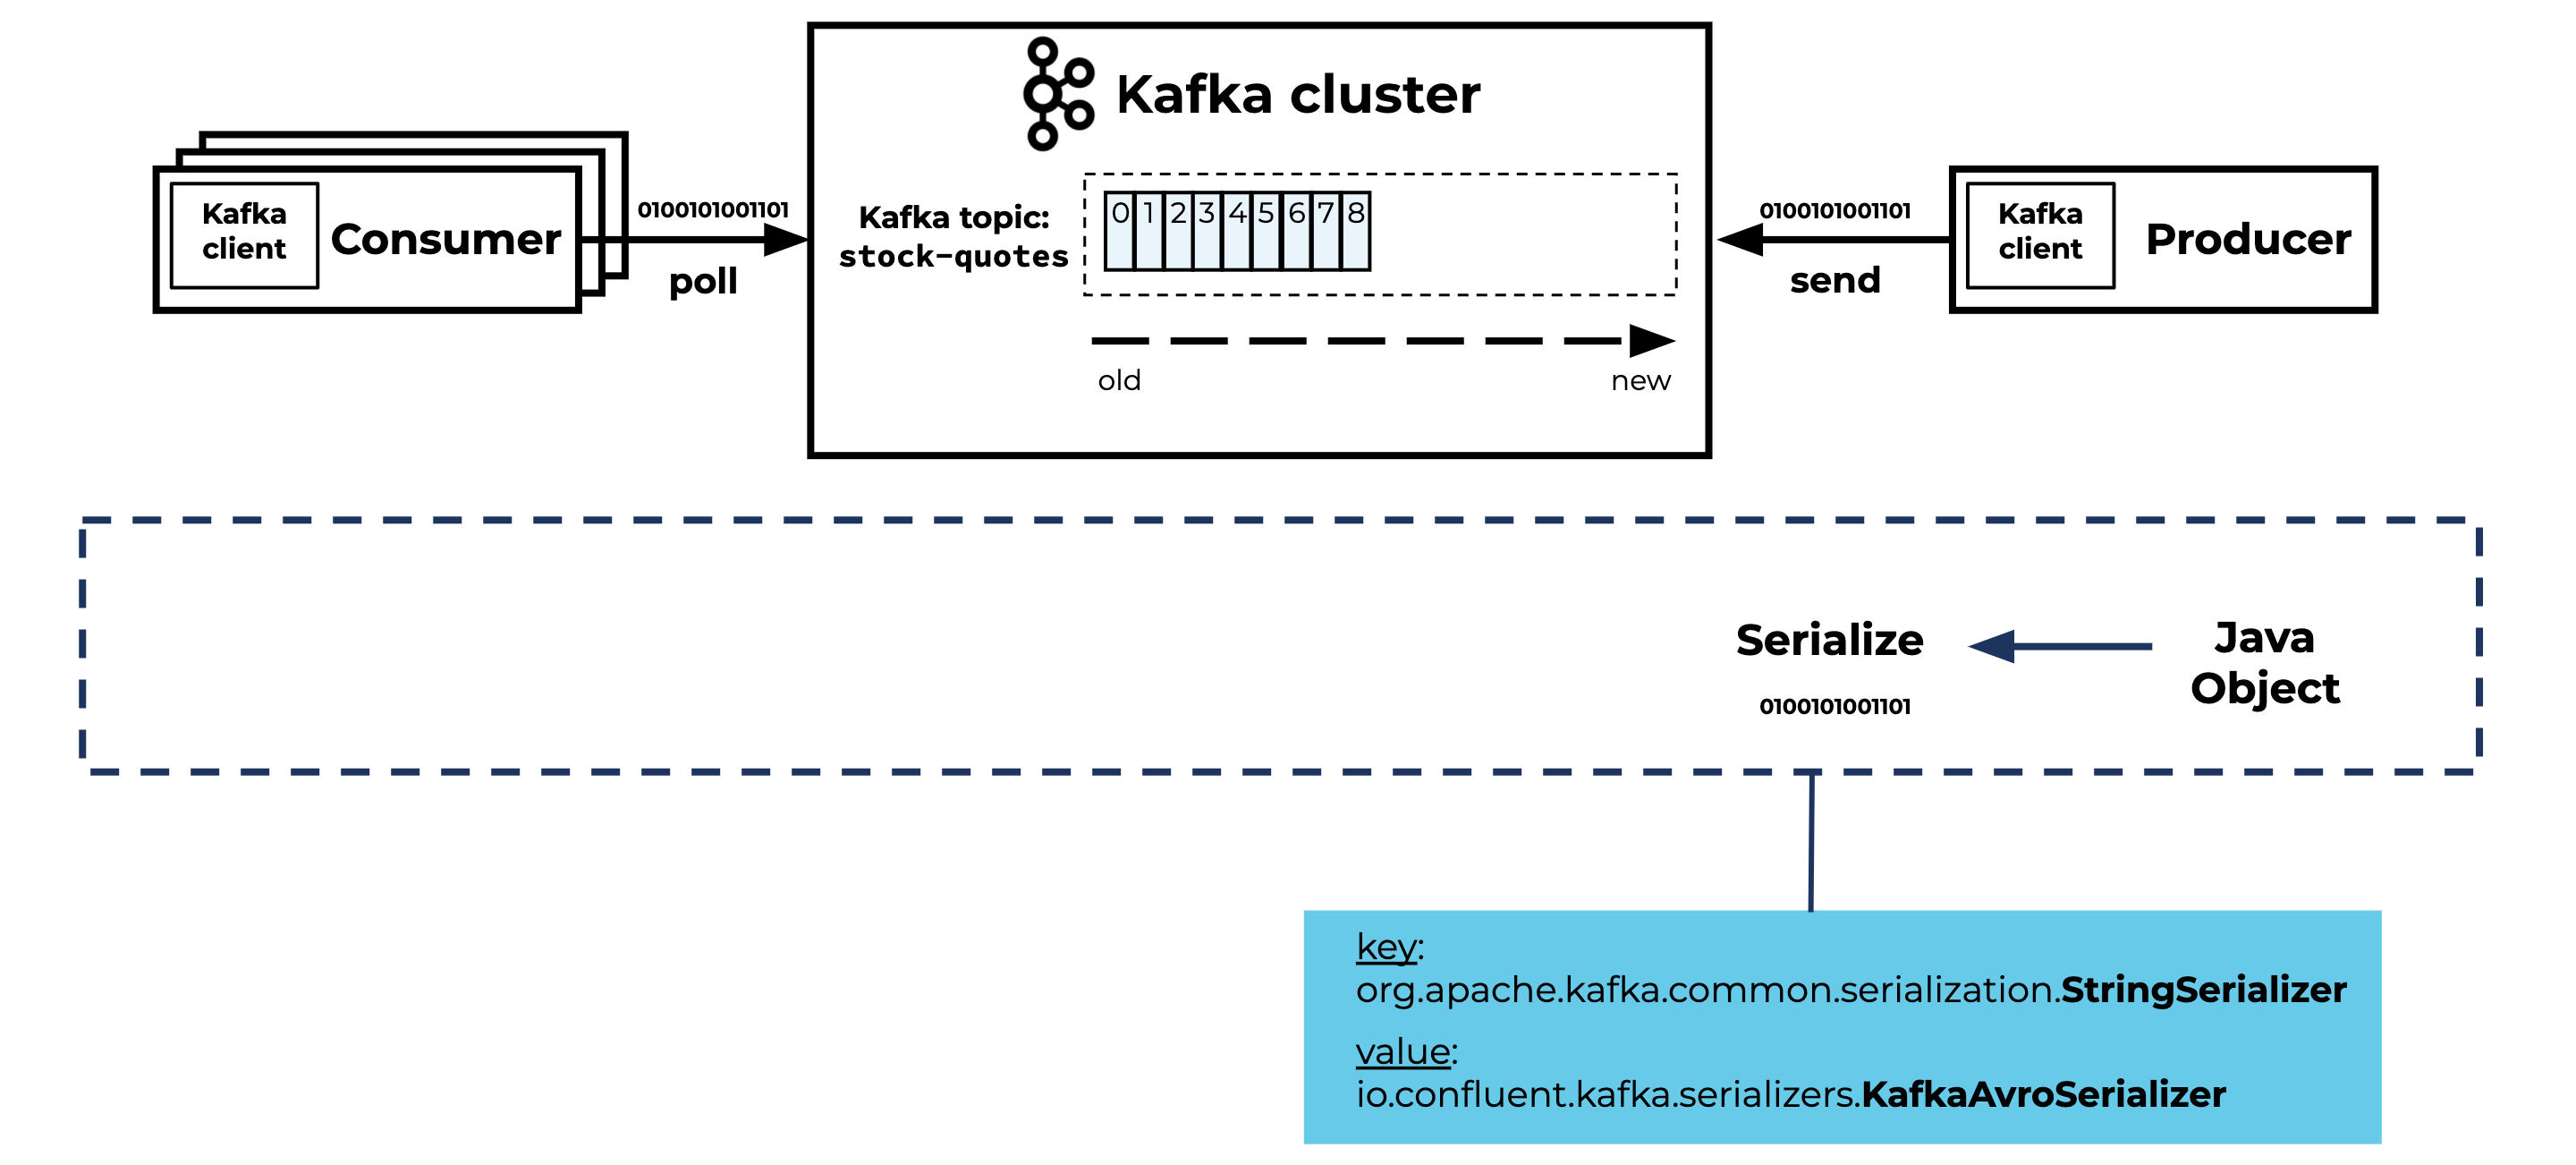 Kafka: Java Object ➝ Serialize